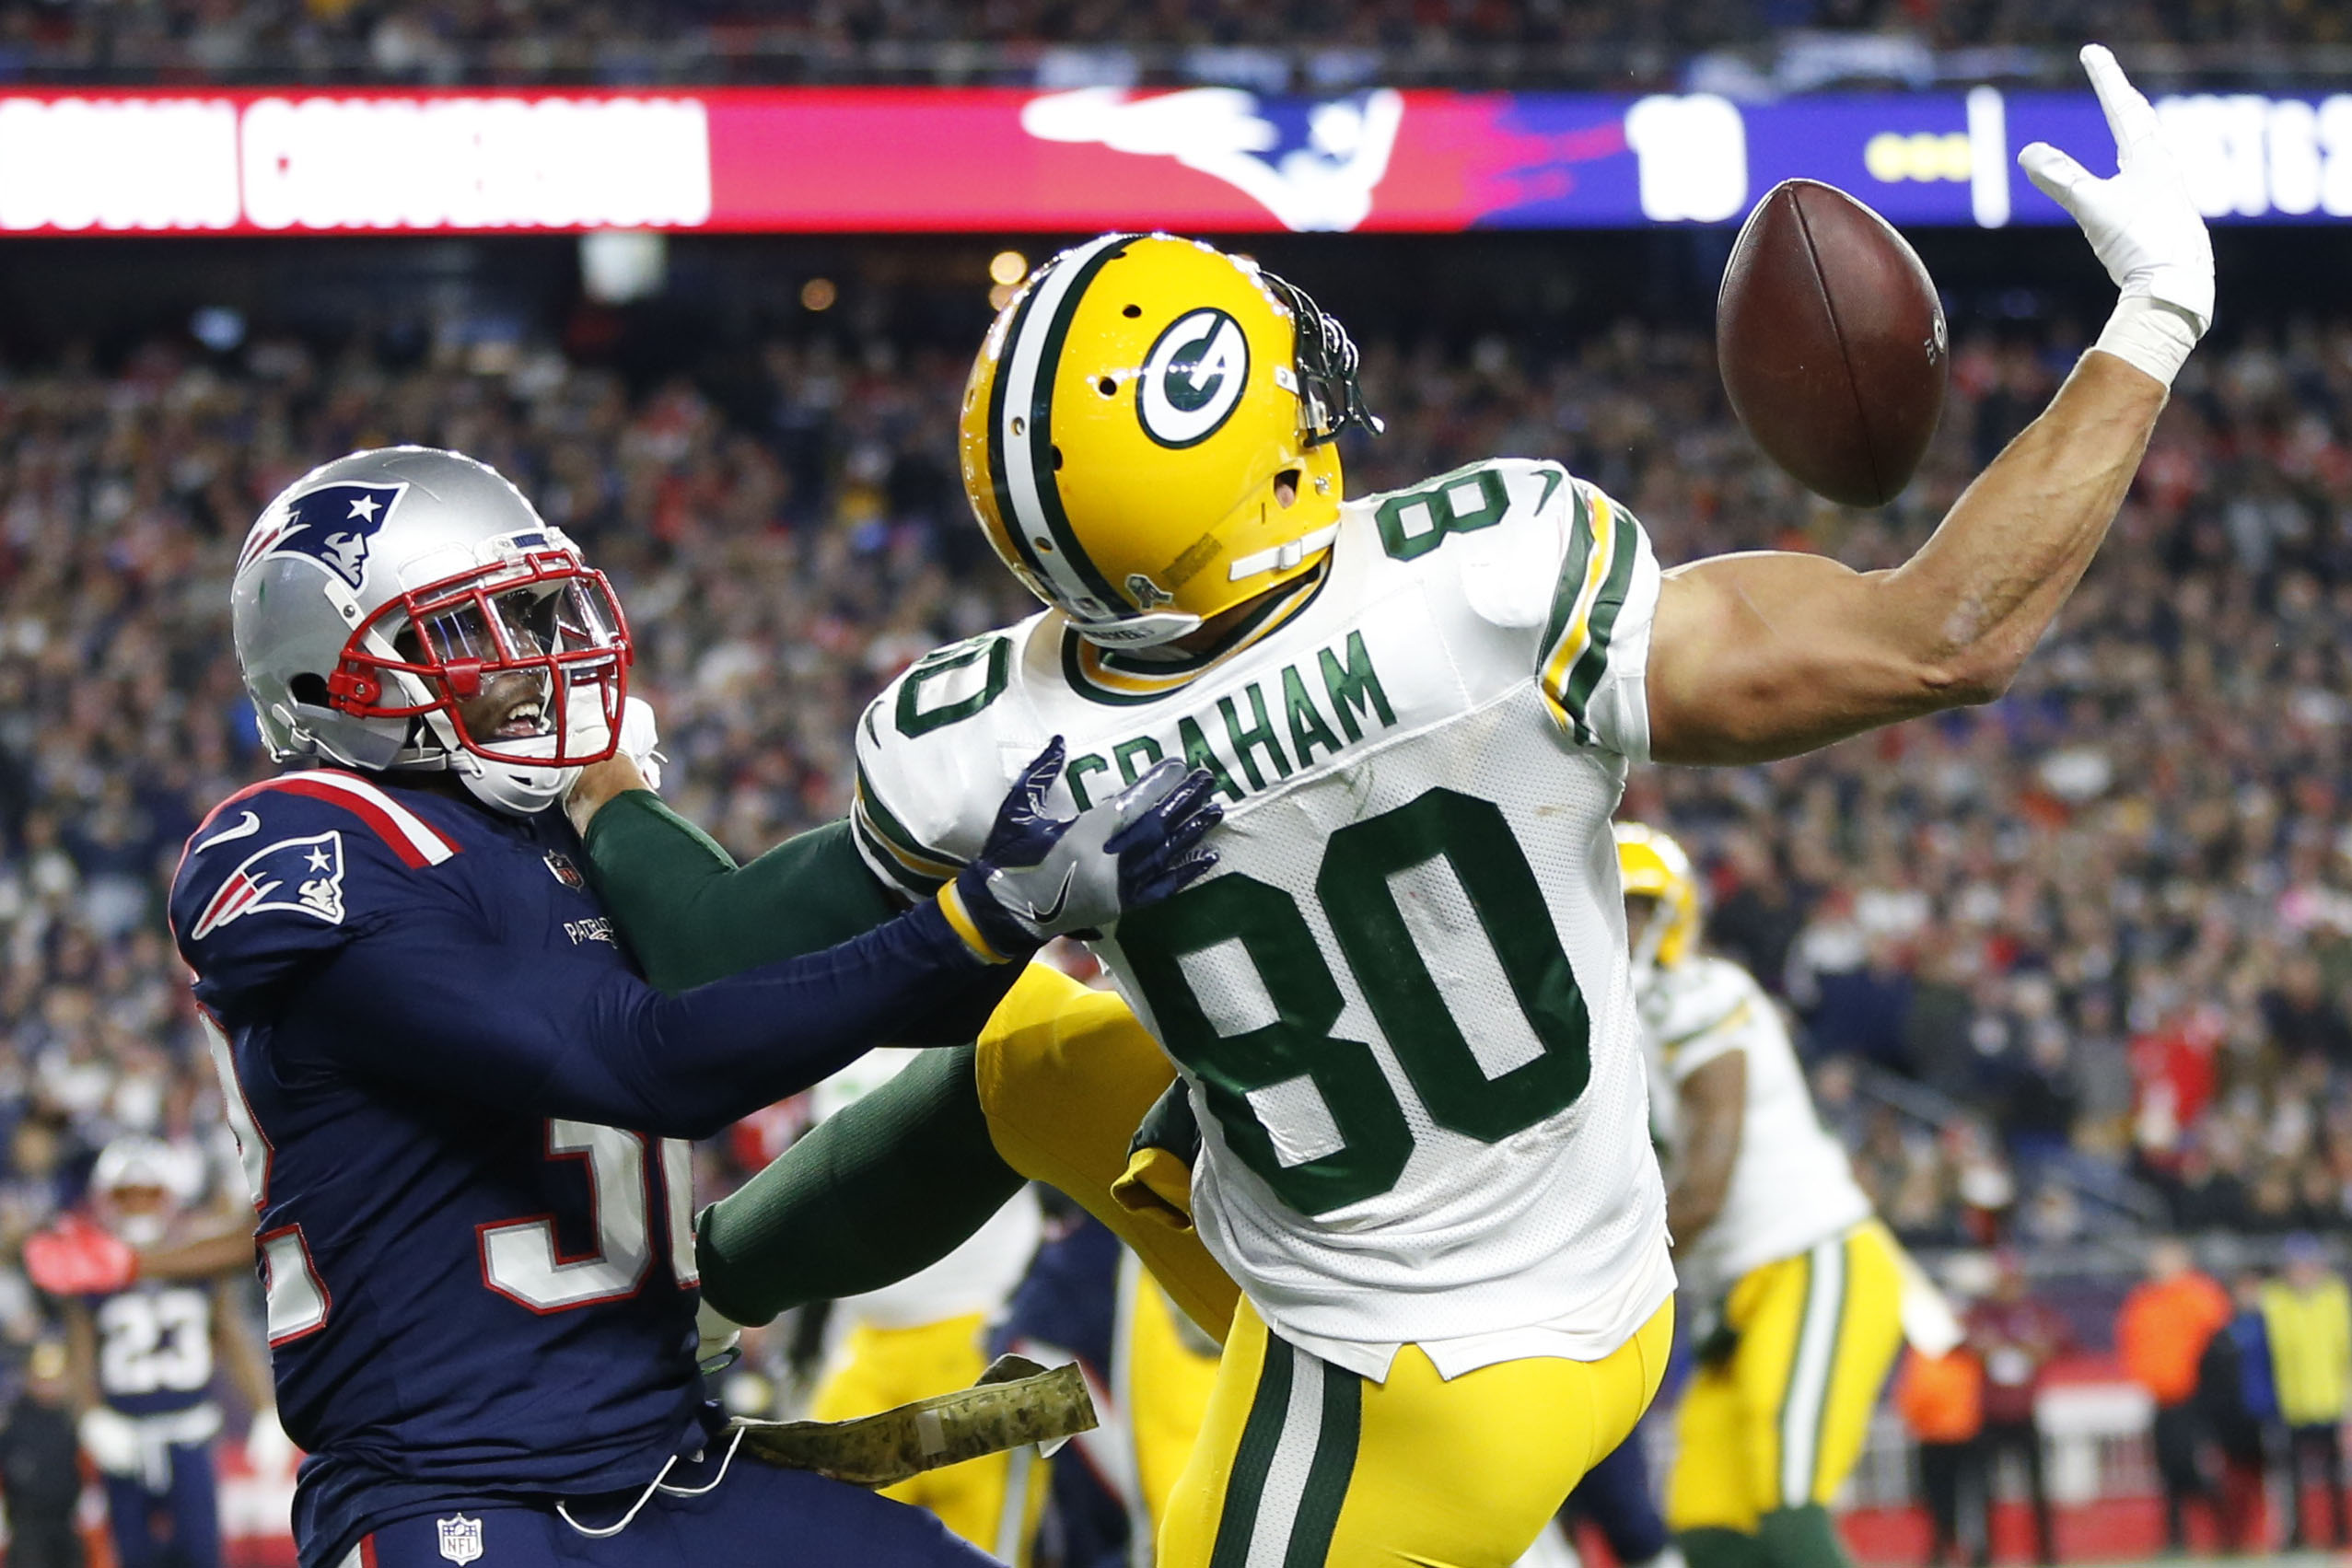 Seven Key Takeaways from the Packers 31-17 Loss to the Patriots